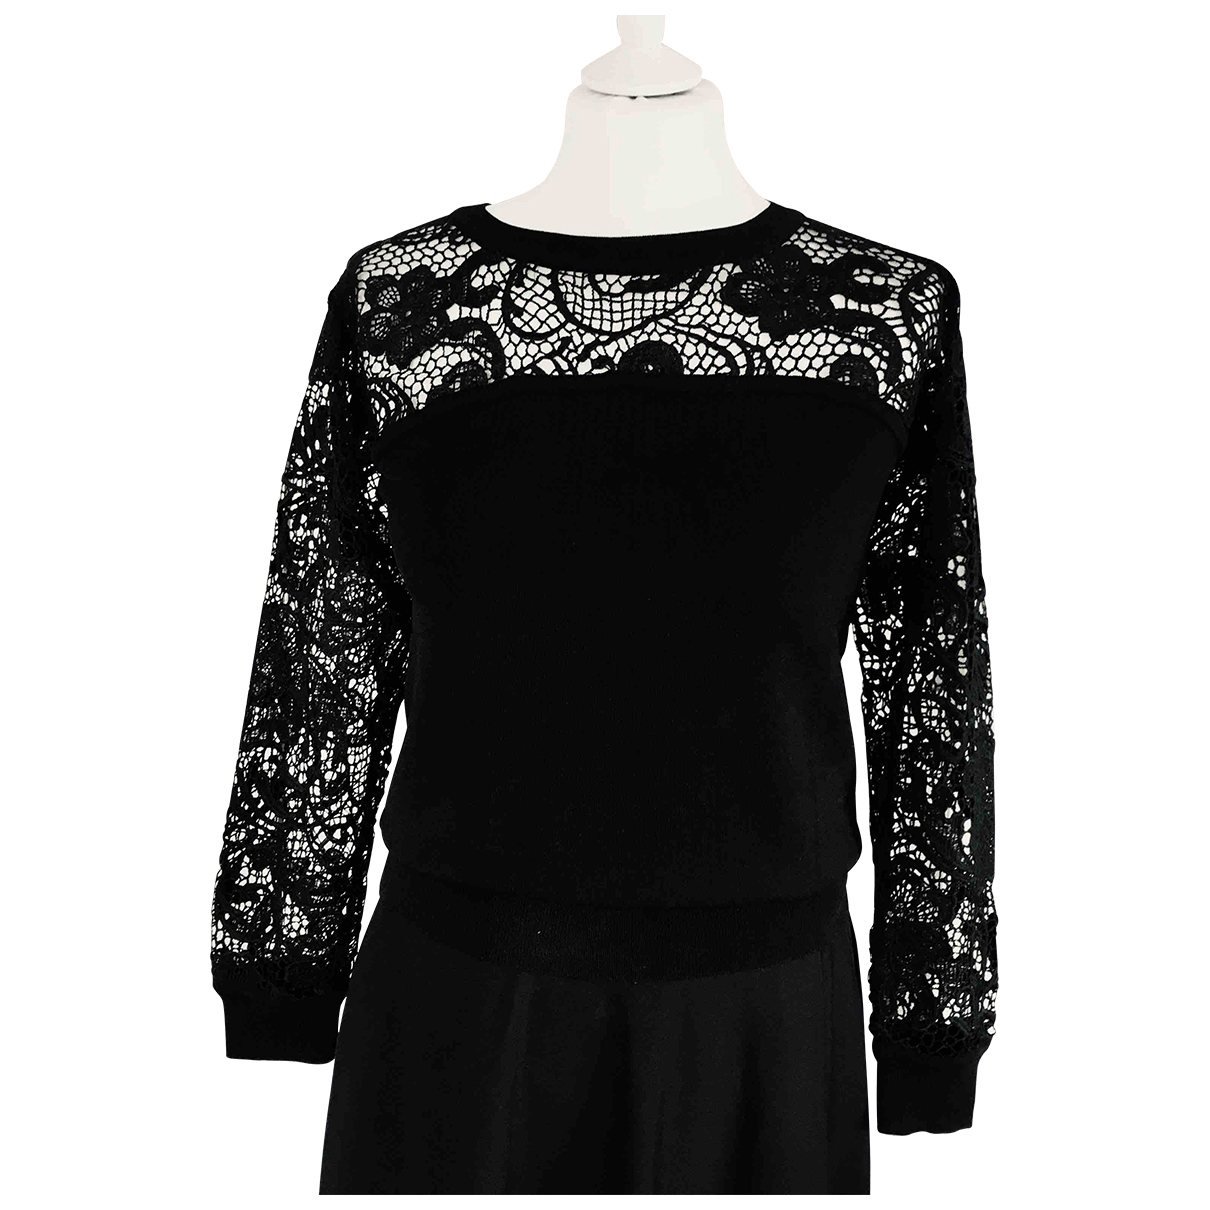 Karen Millen \N Black Knitwear for Women S International